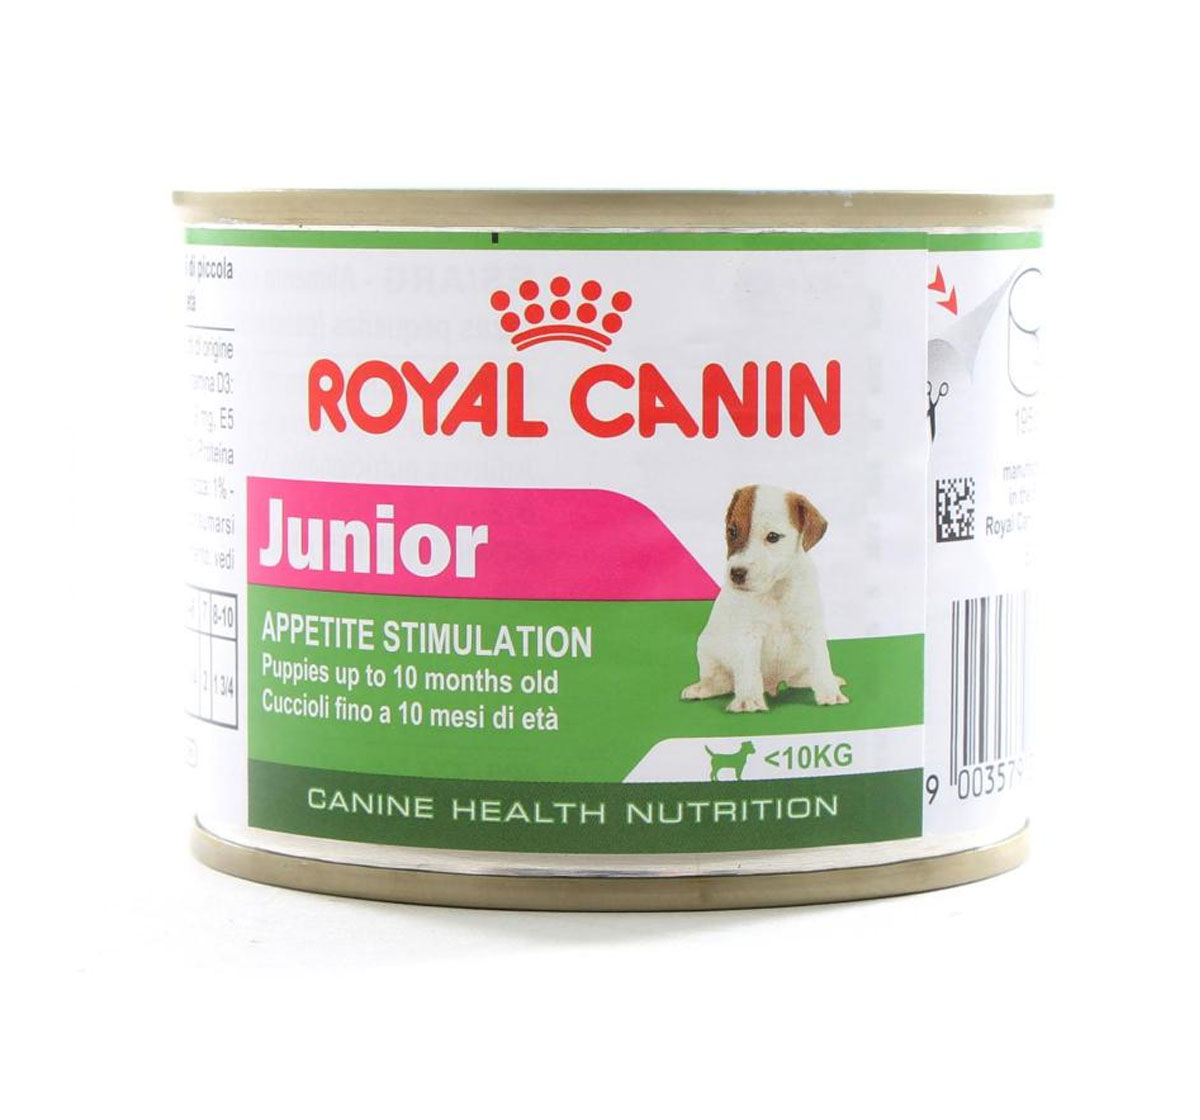 royal canin mini junior can food 195 gm dogspot online pet supply store. Black Bedroom Furniture Sets. Home Design Ideas